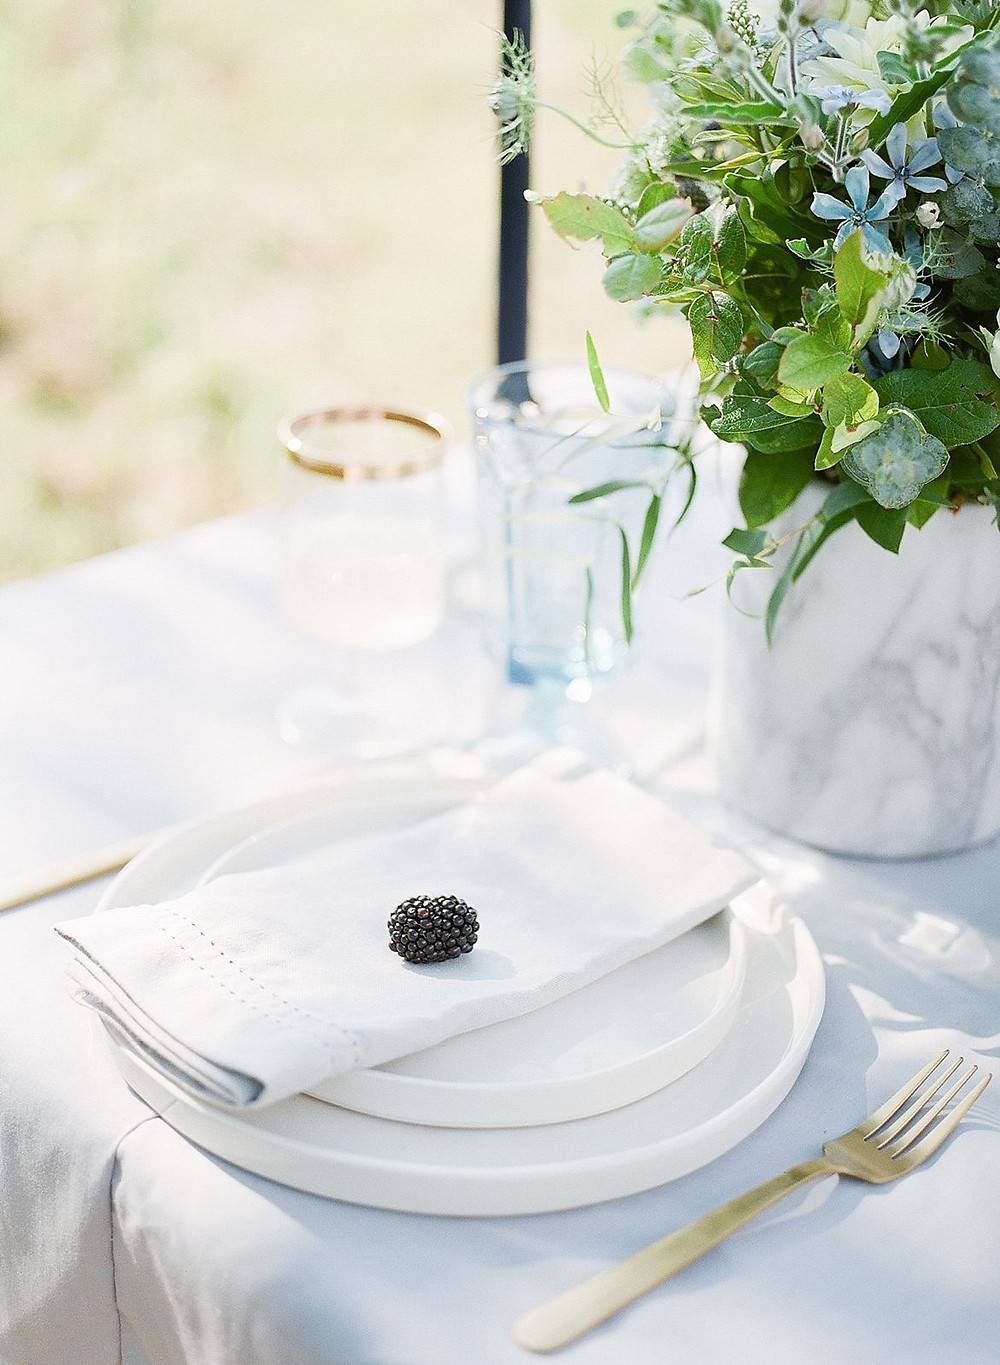 detail of blackberry on place setting